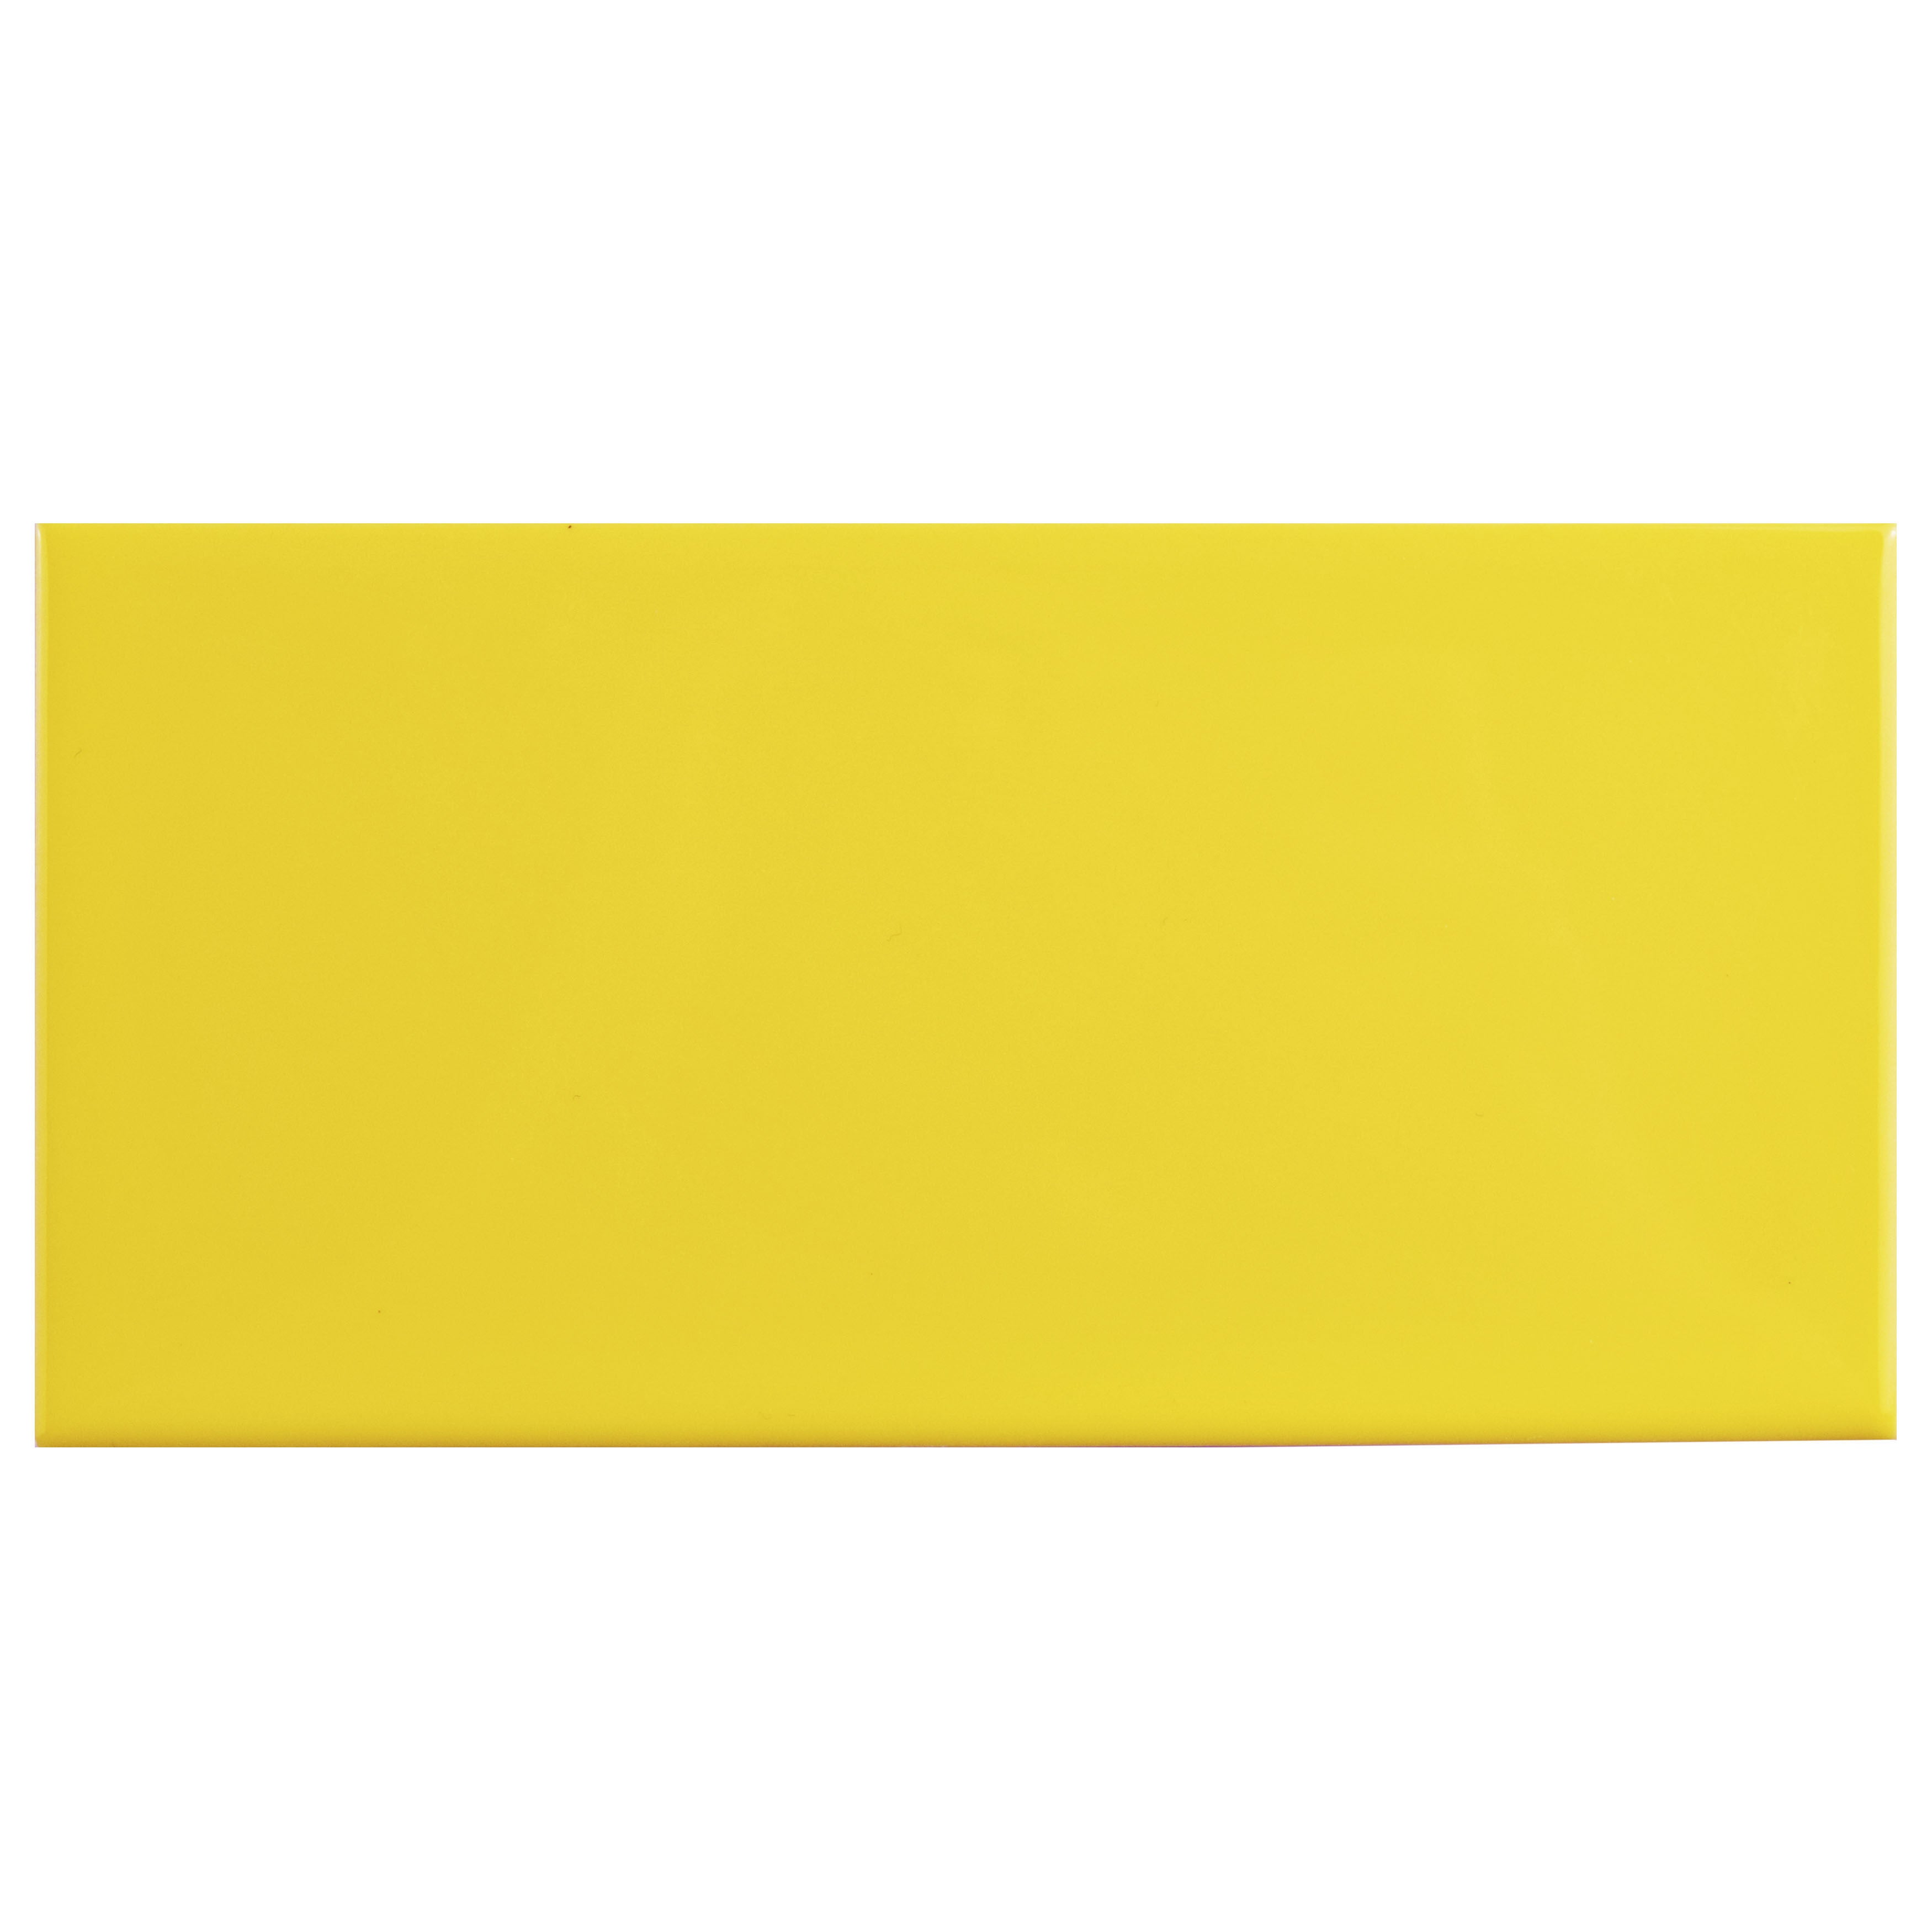 Somertile 3x6 inch malda subway glossy canary yellow ceramic wall somertile 3x6 inch malda subway glossy canary yellow ceramic wall tile 136 tiles17 sqft free shipping today overstock 19901473 dailygadgetfo Choice Image